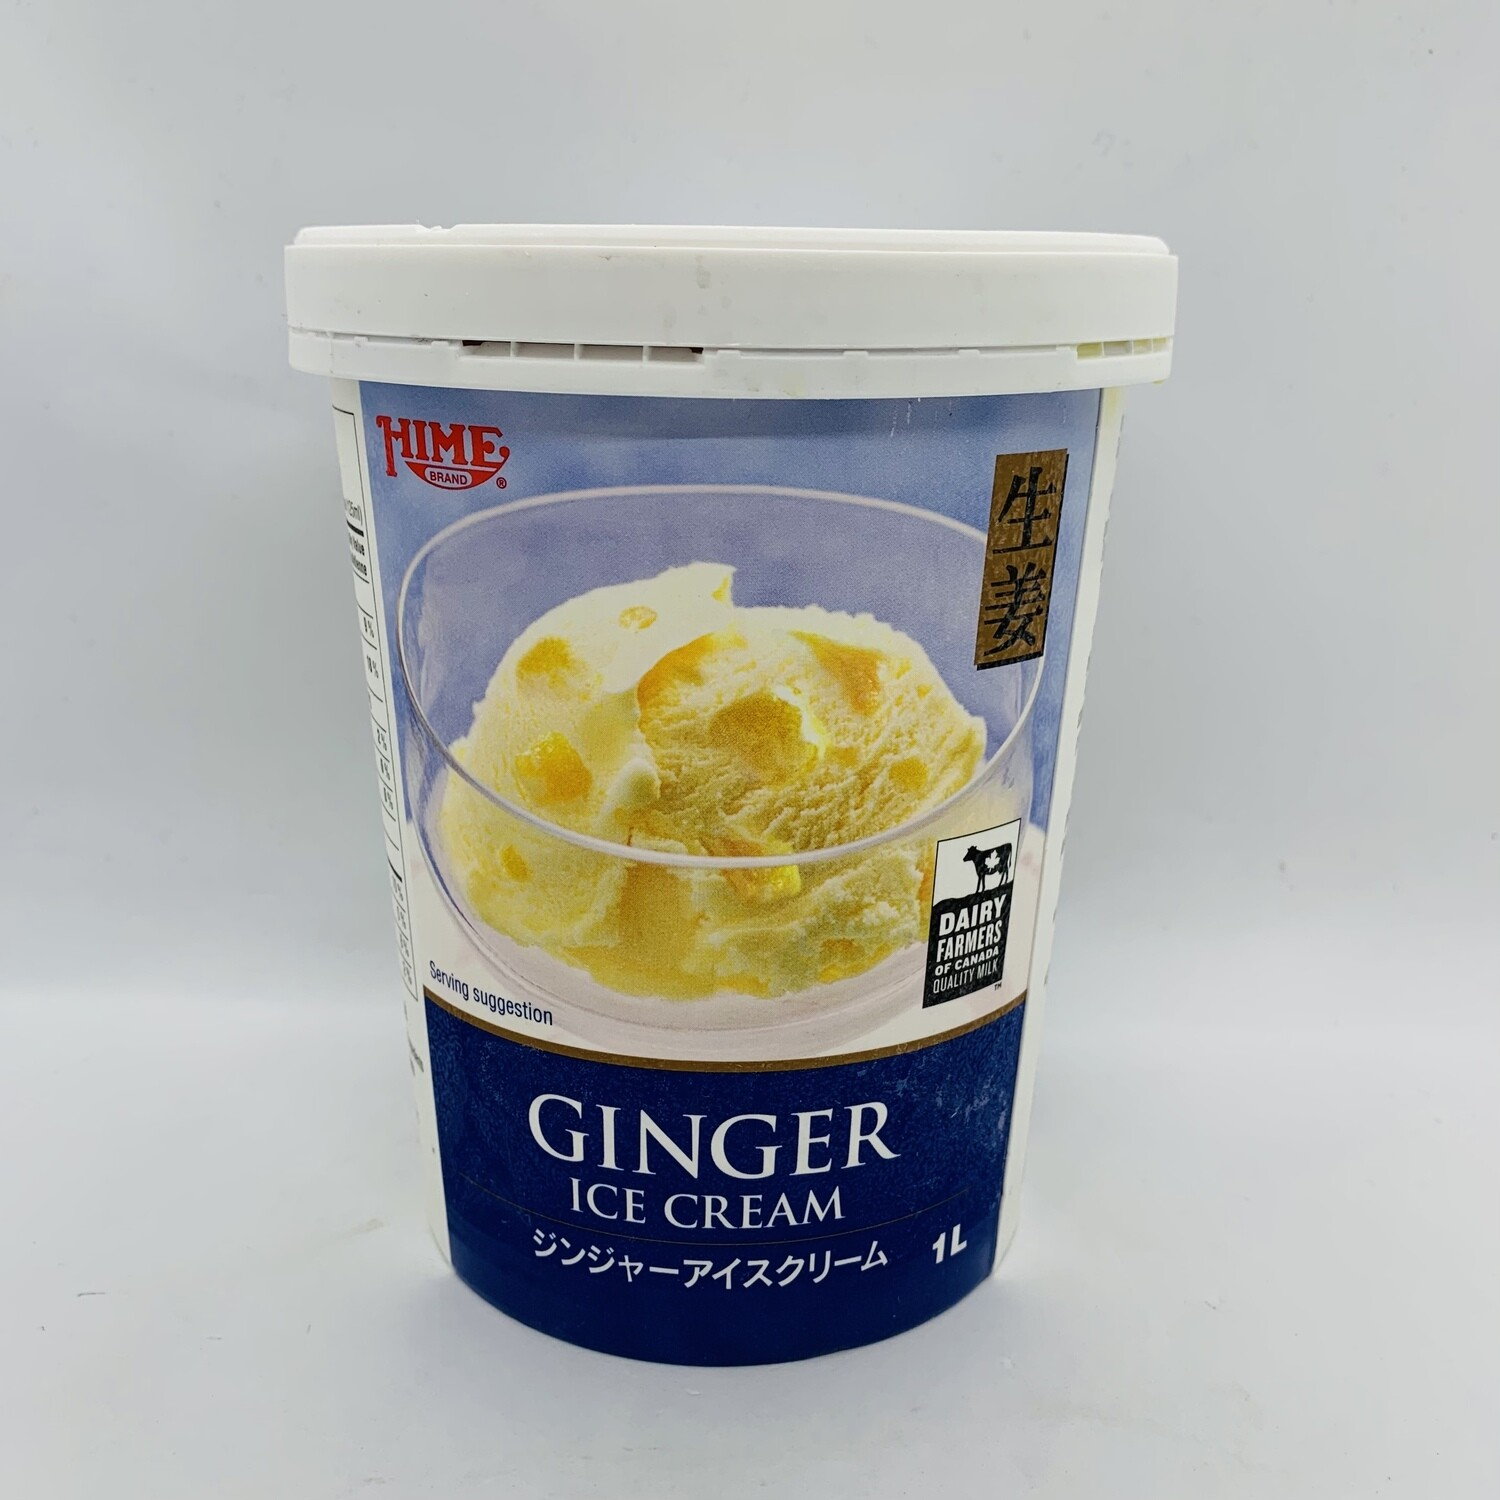 Hime Ginger Ice Cream